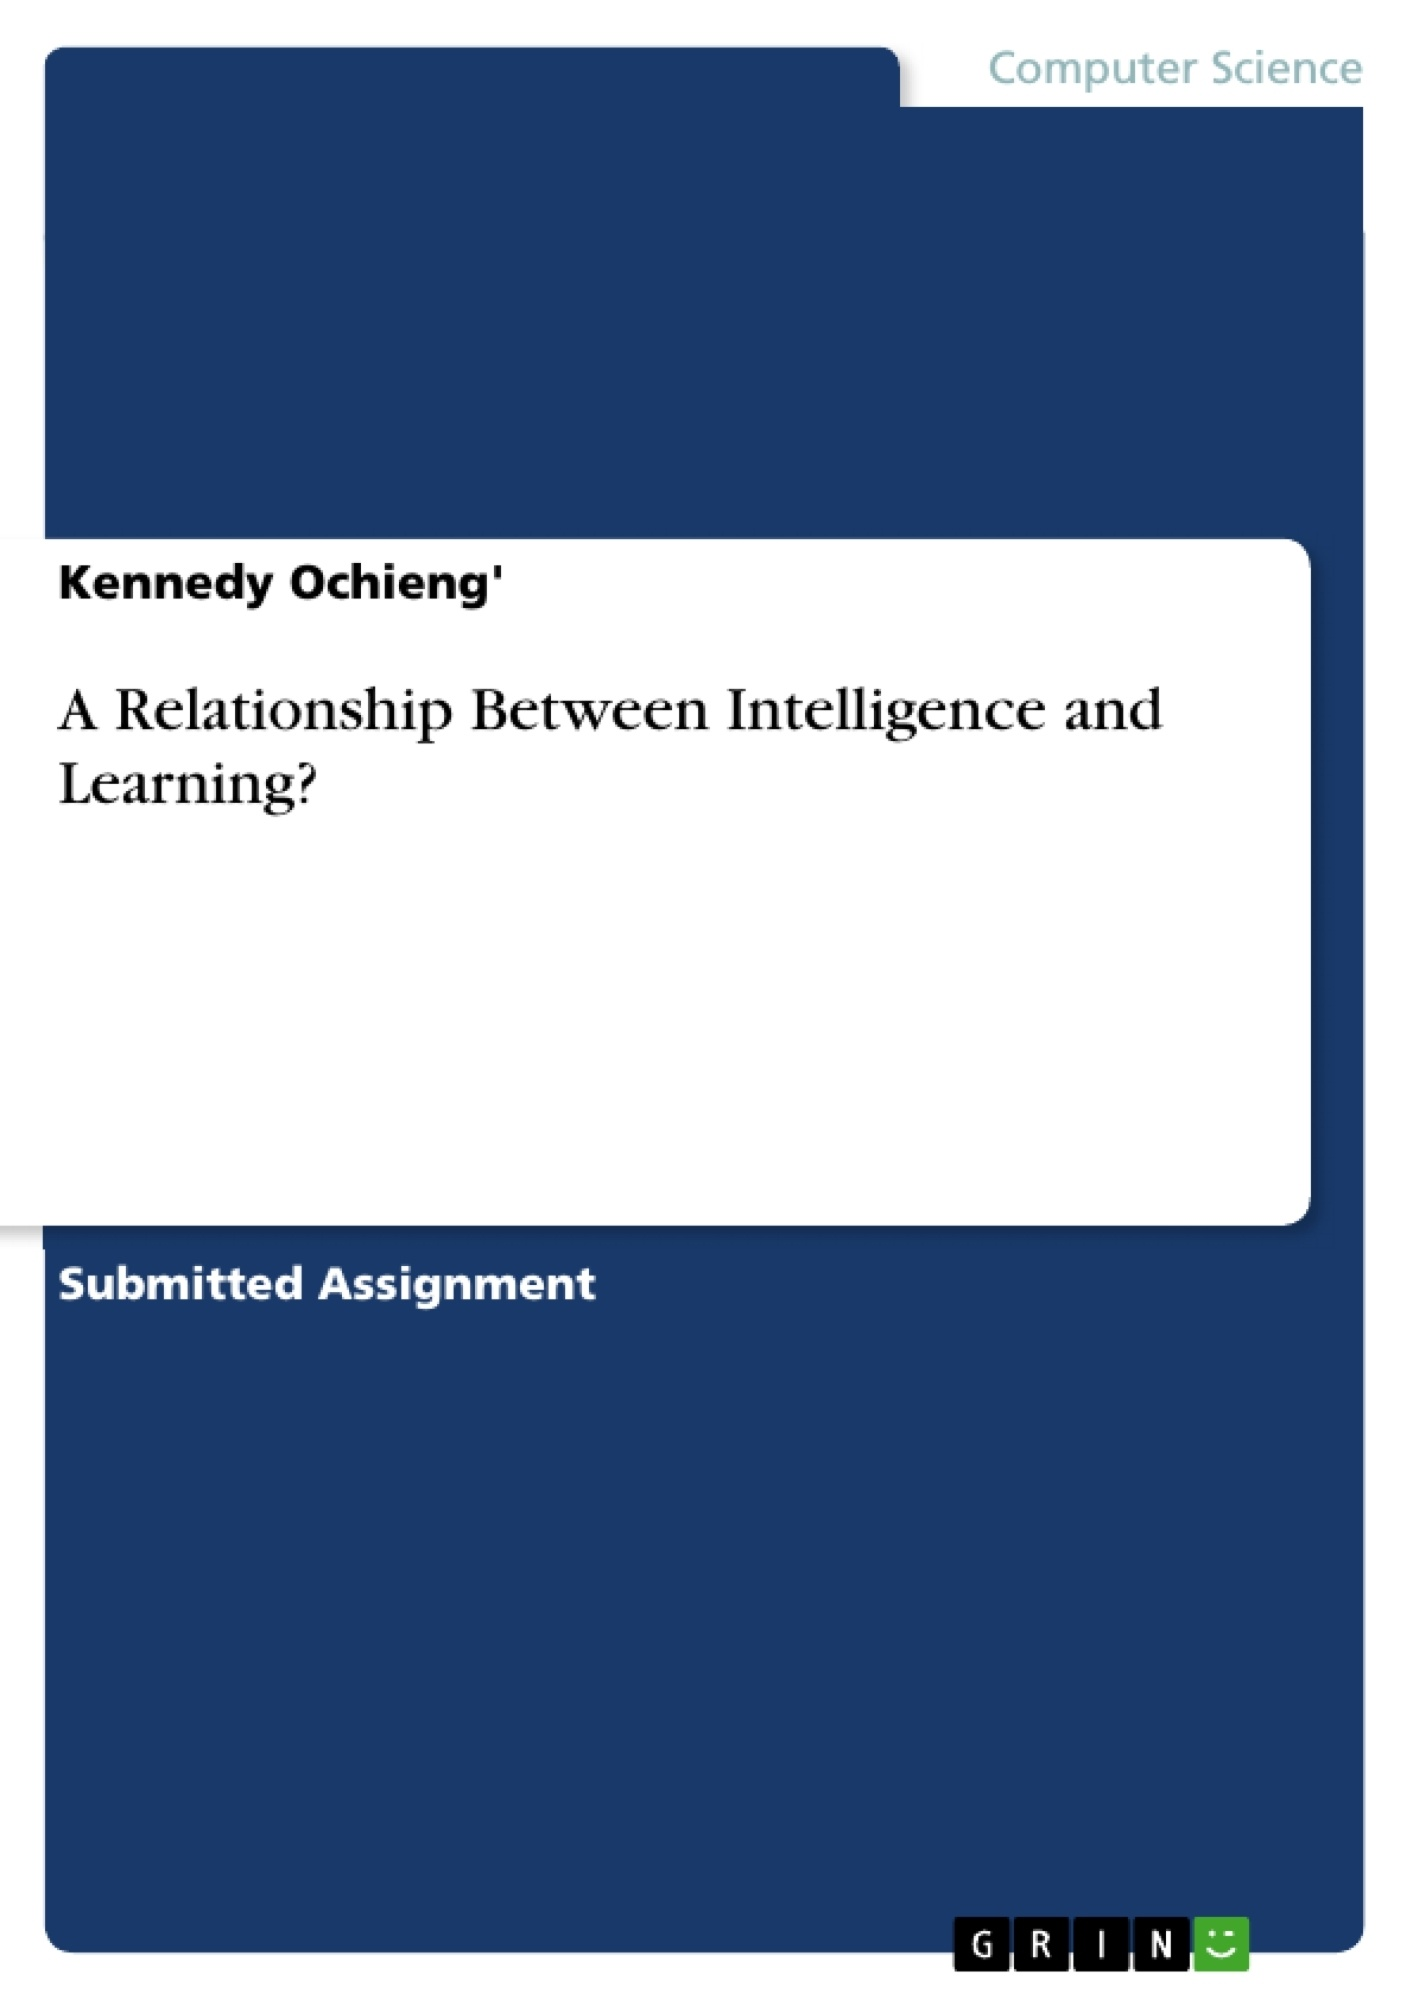 Title: A Relationship Between Intelligence and Learning?